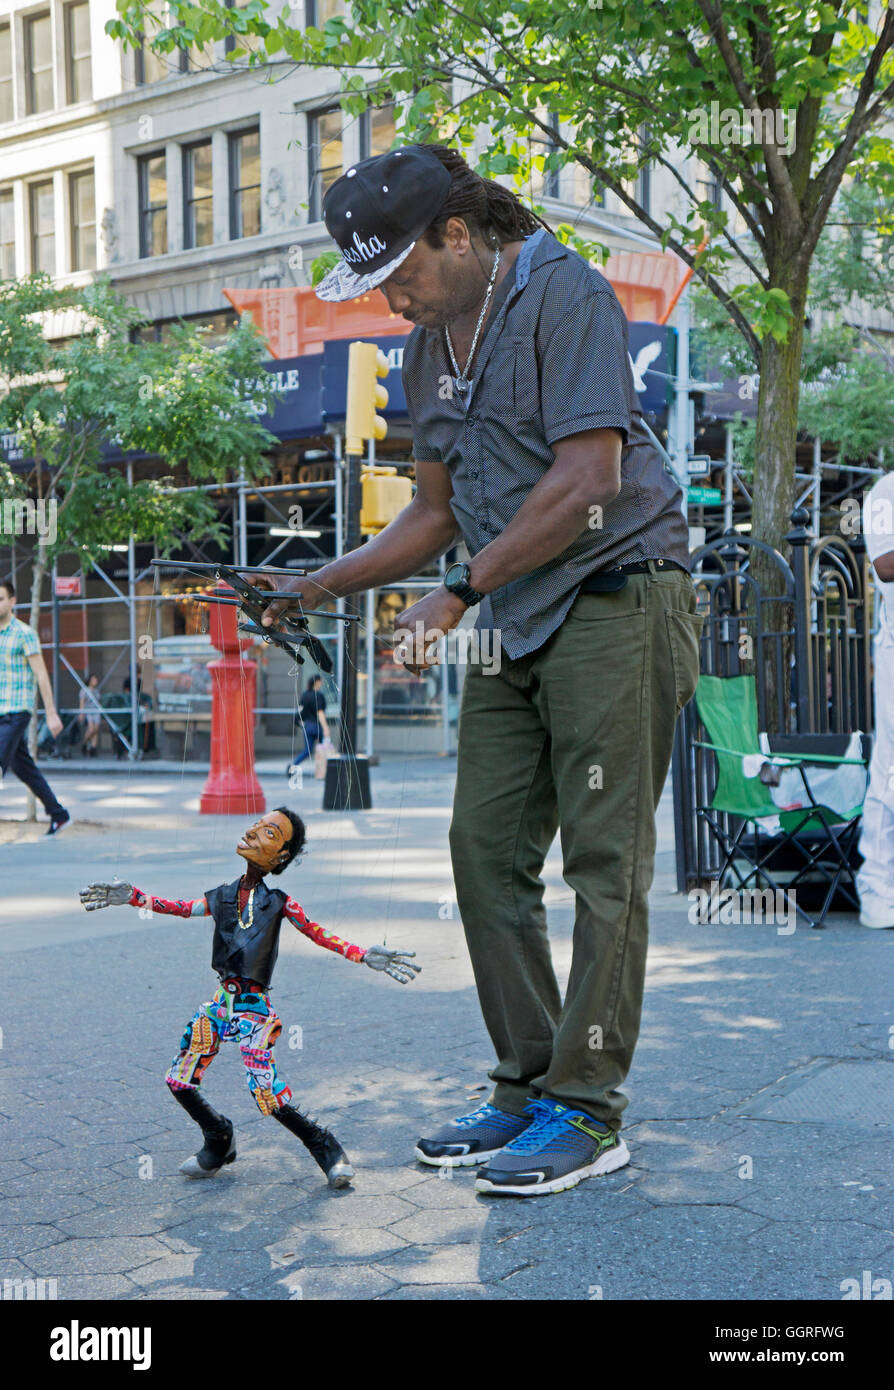 A marionette puppeteer with his dancing puppet in Union Square Park in Manhattan, New York City - Stock Image